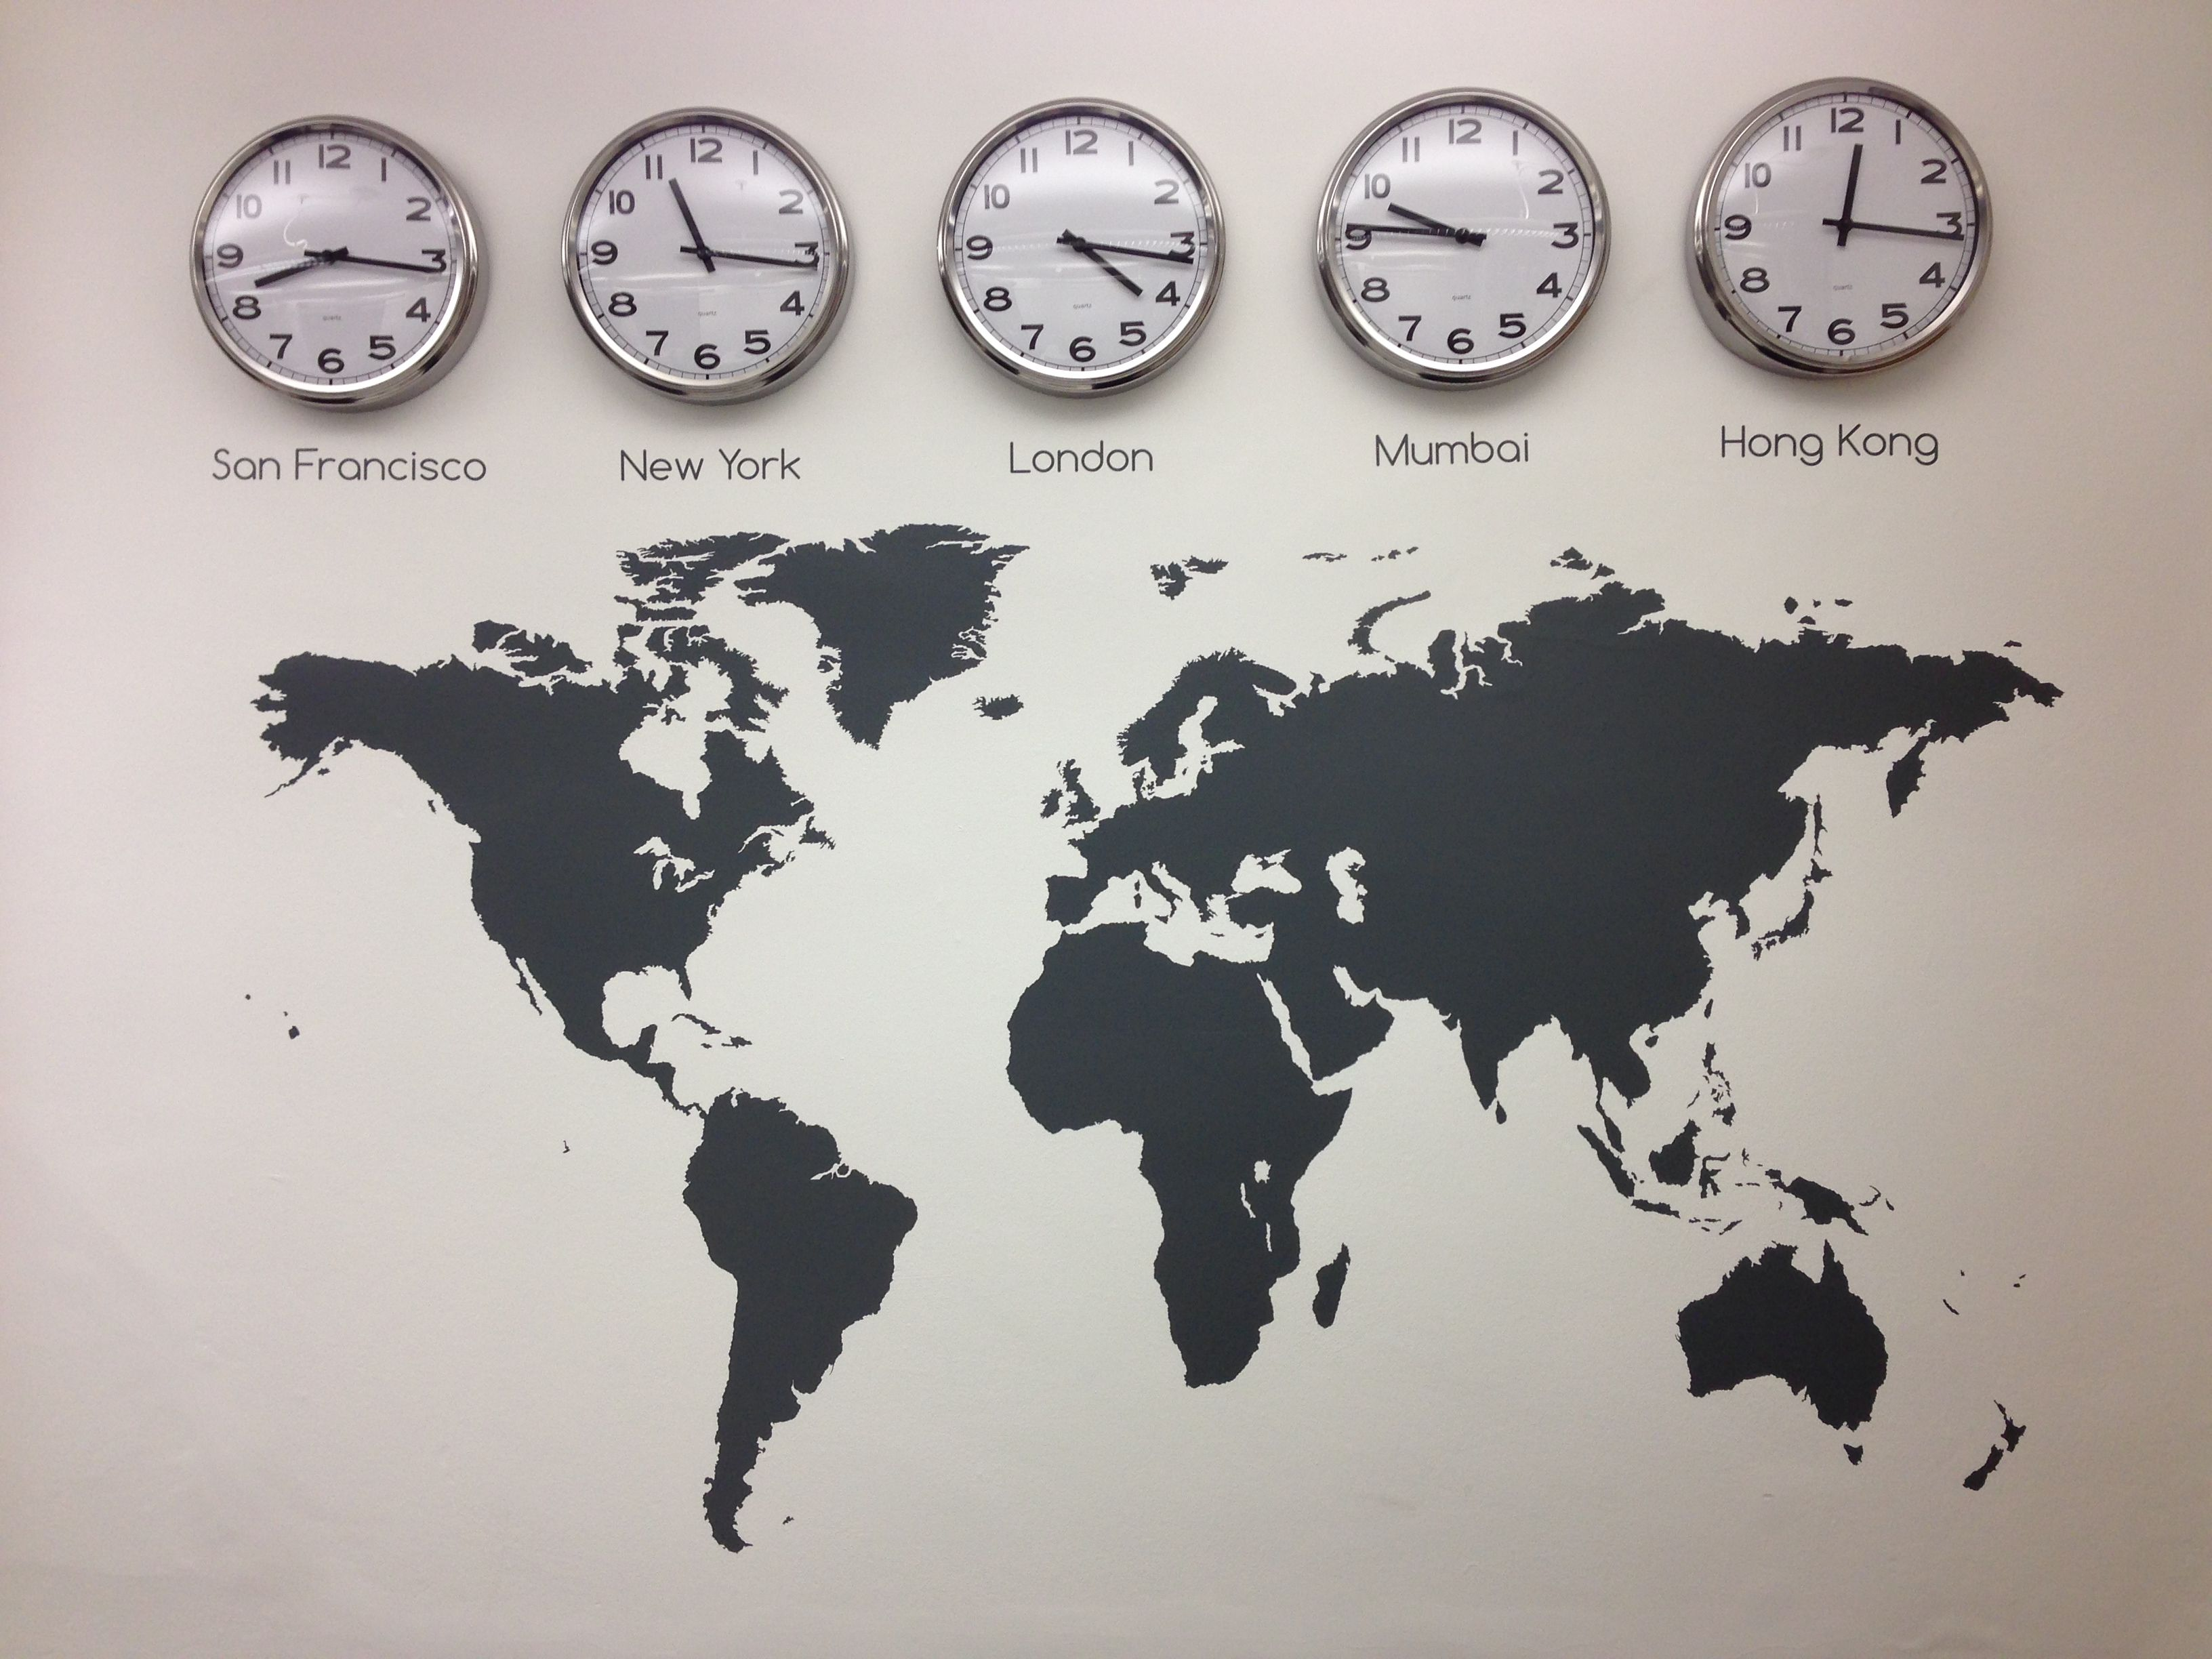 World map sticker for wall india - Www Vinylimpression Co Uk Why Not Mix Our Map With Some Clocks To